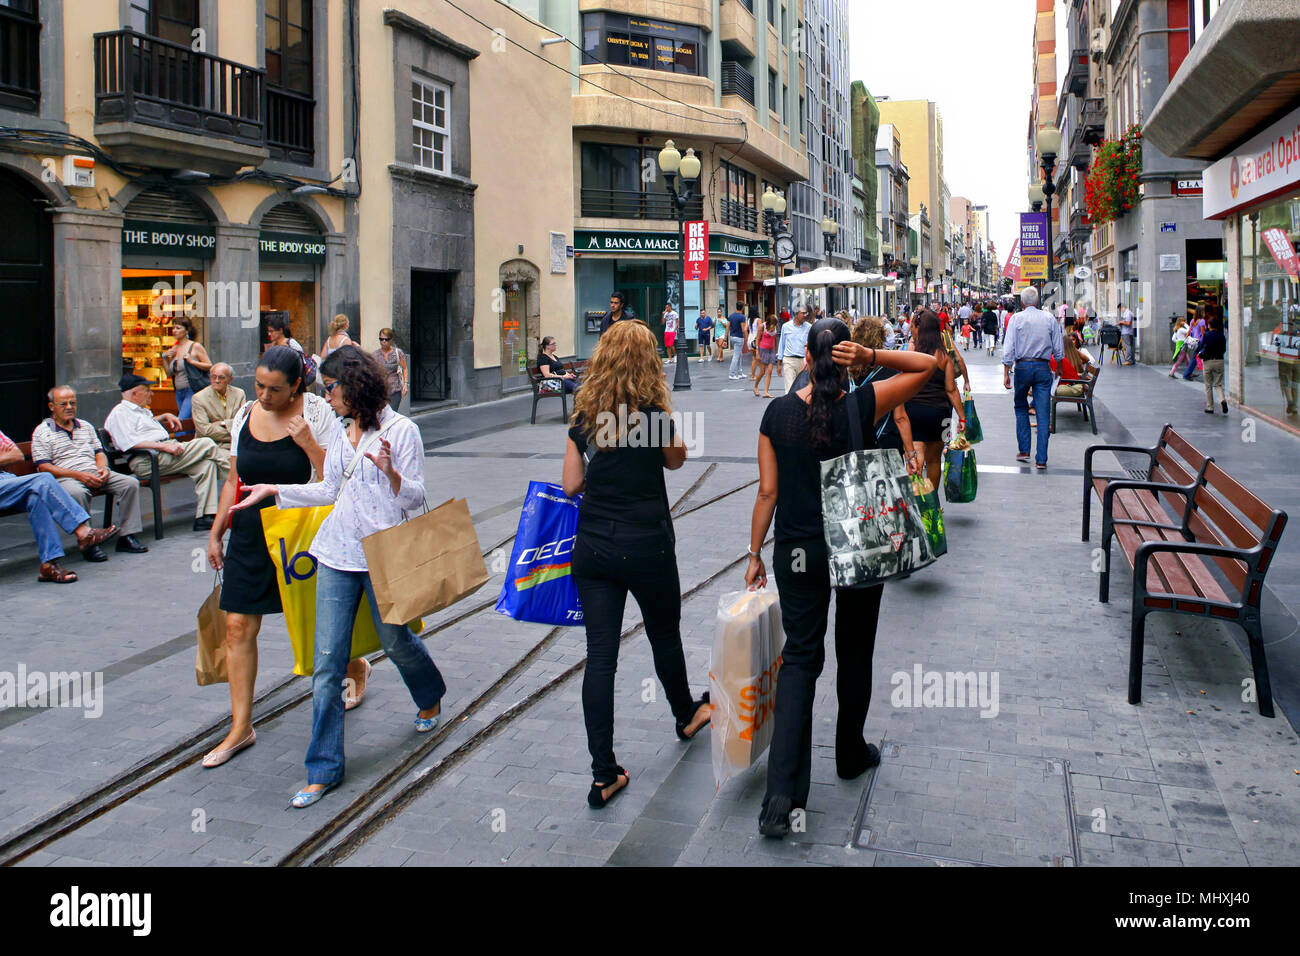 Shoppers passing the old tramway tracks on Calle Mayor de Triana high street, Las Palmas, Gran Canaria, Canary Islands, Spain - Stock Image